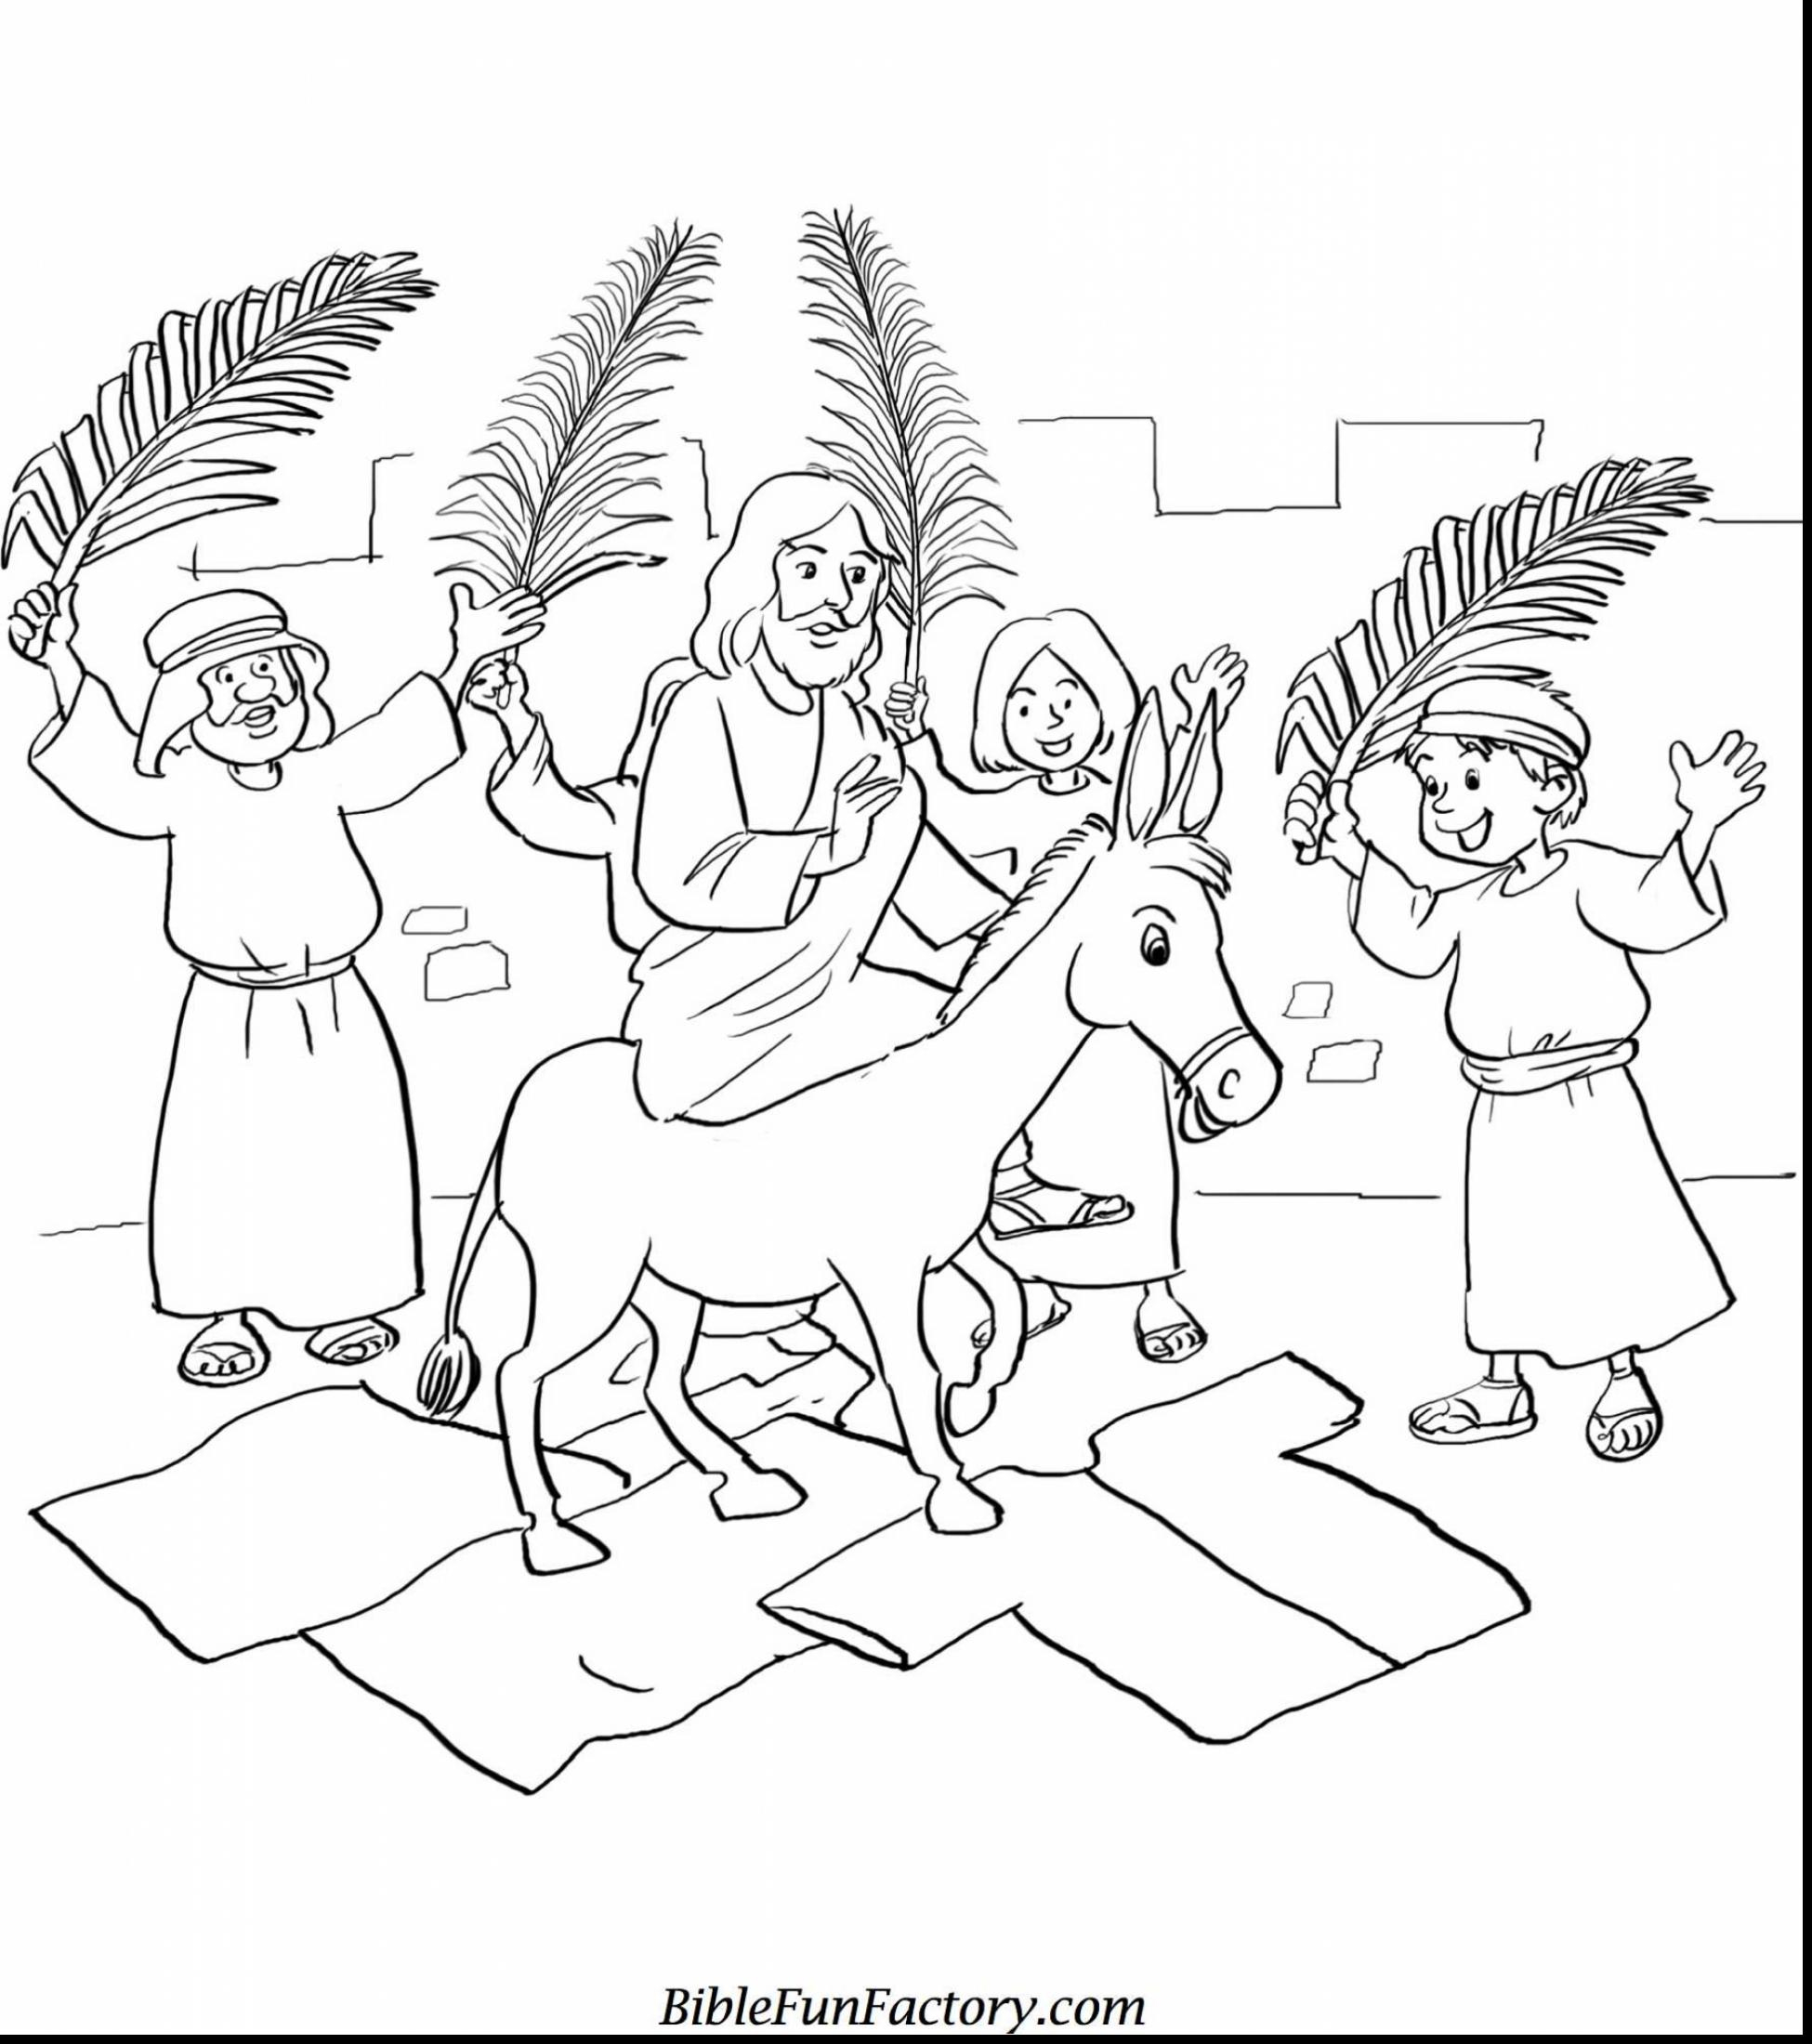 Classy Ideas Bible Coloring Pages For Kids Free Printable Download Of